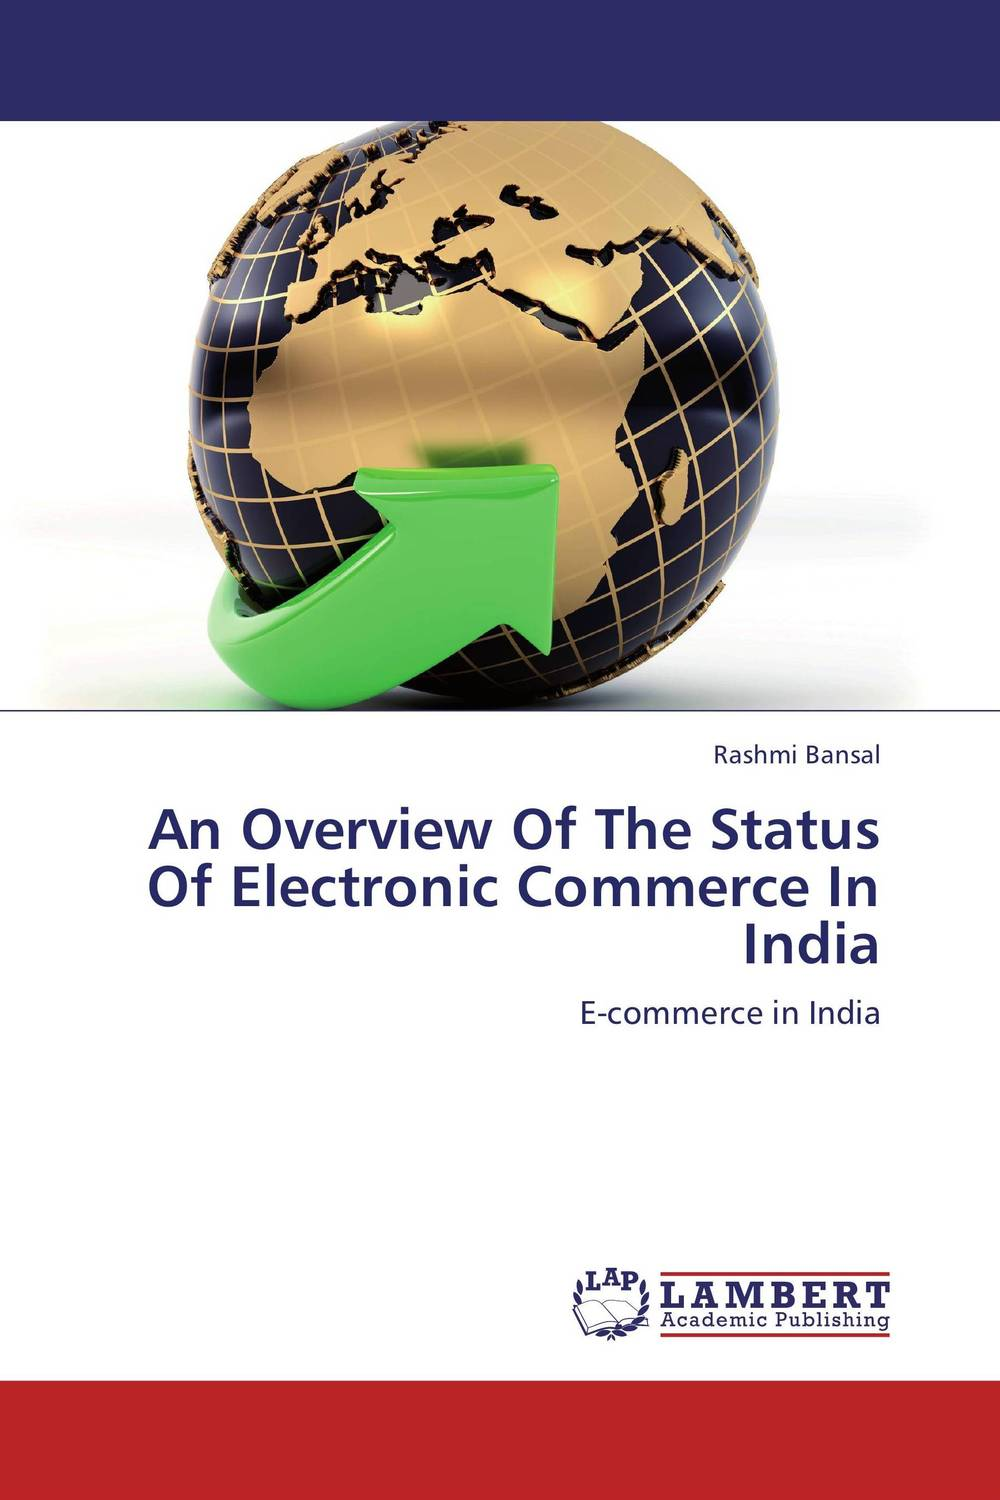 An Overview Of The Status Of Electronic Commerce In India